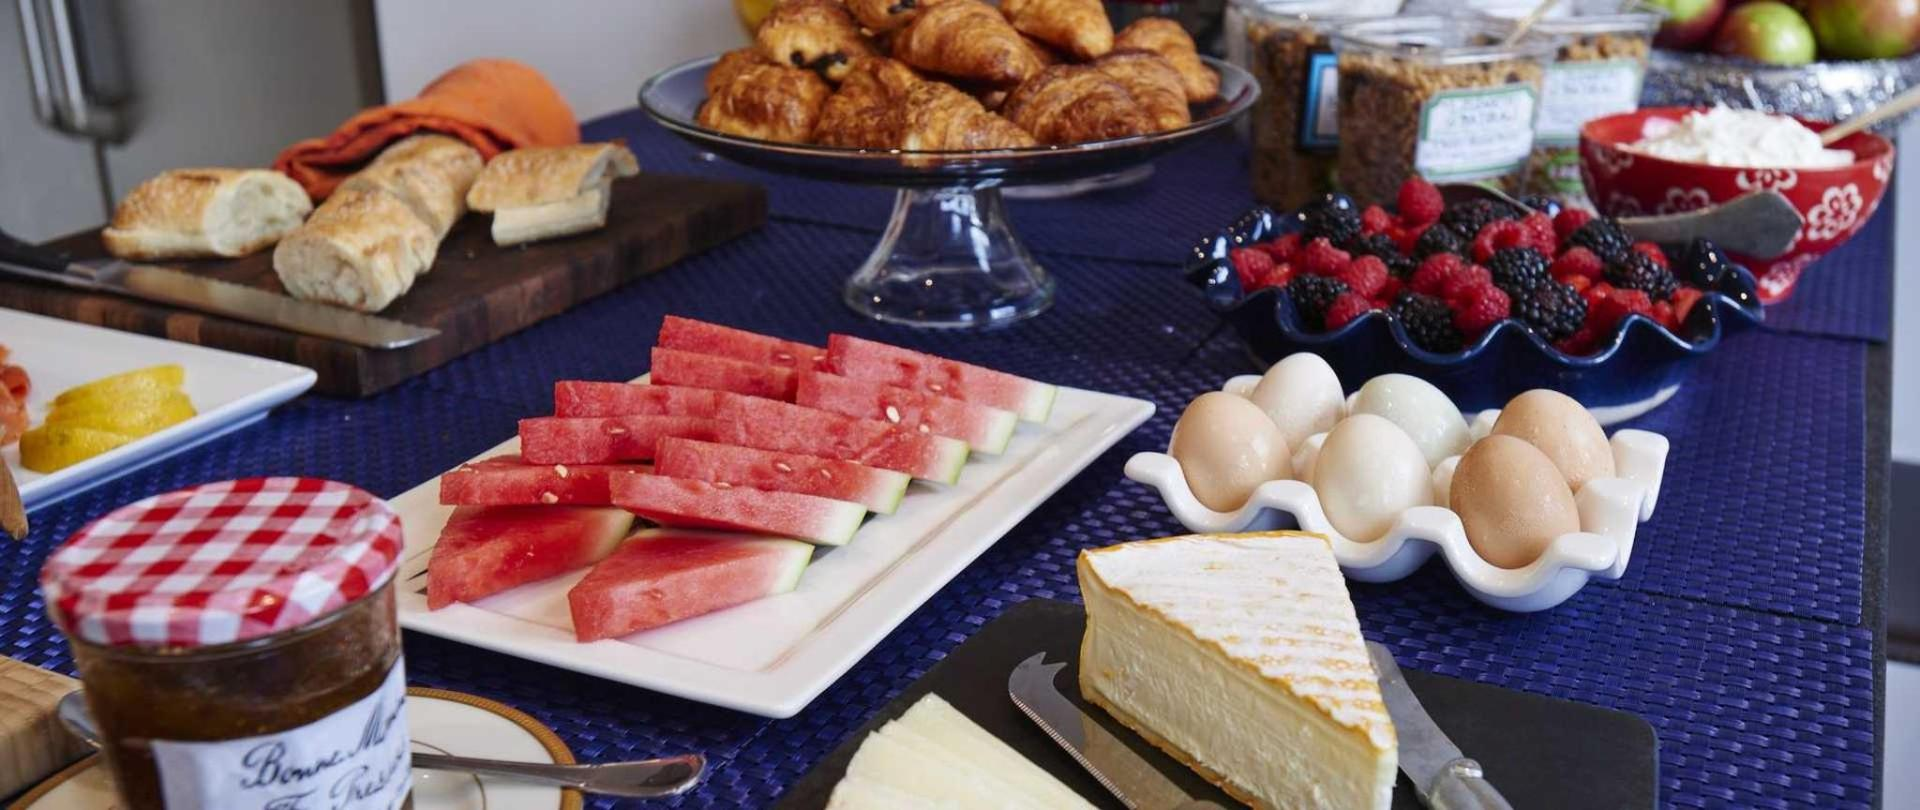 European Inspired Breakfast Buffet